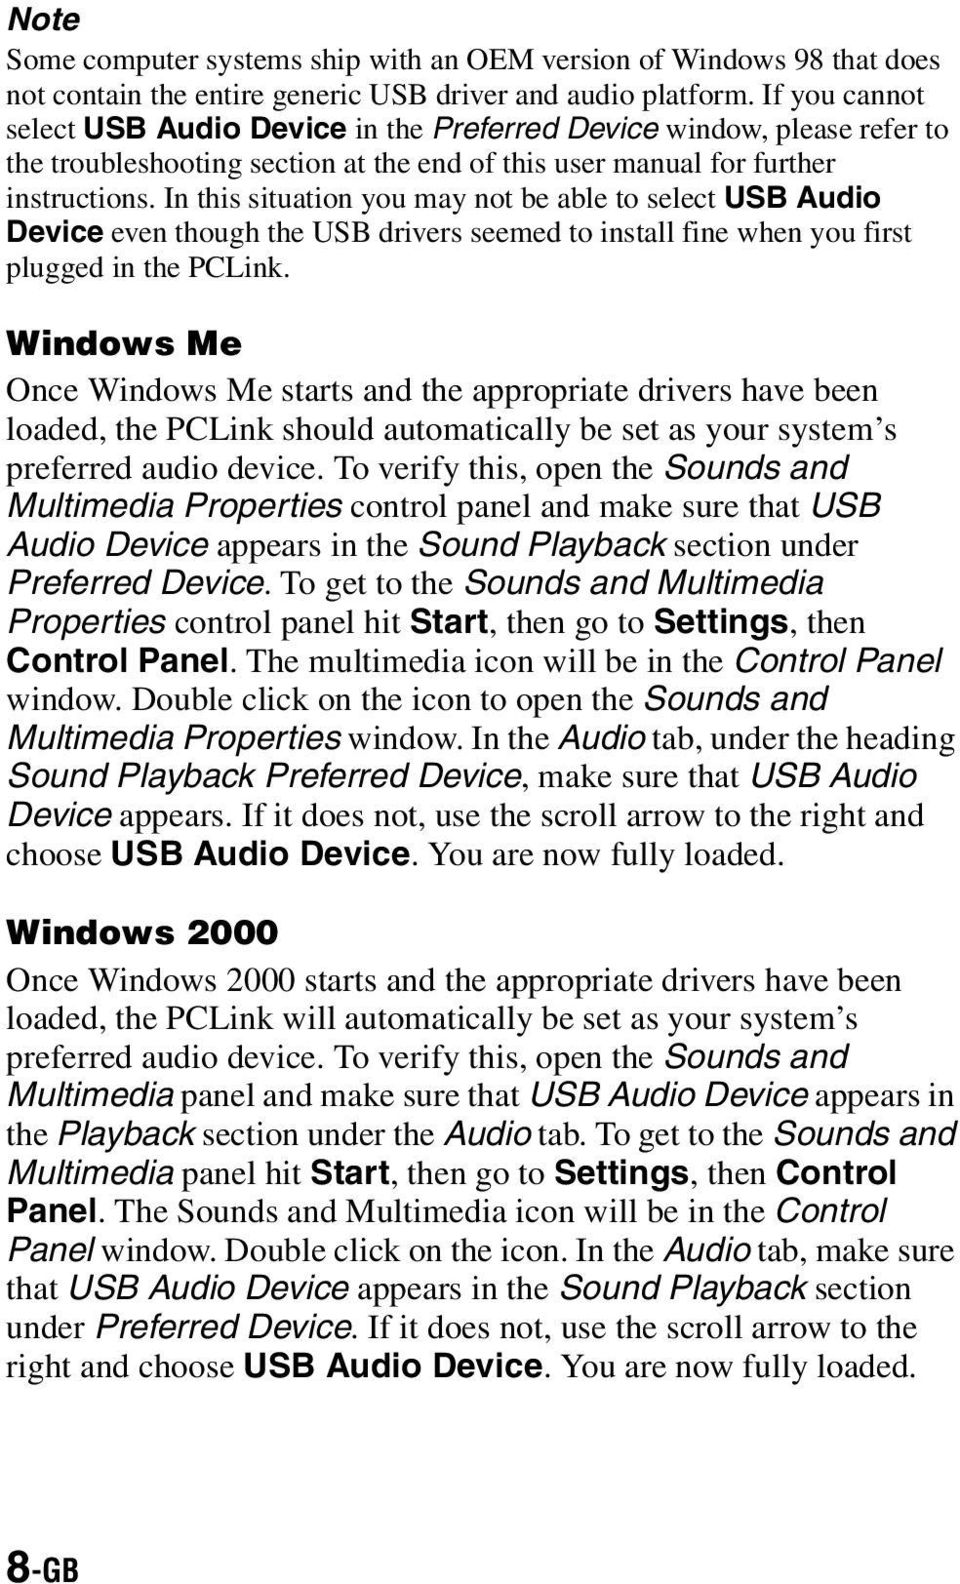 In this situation you may not be able to select USB Audio Device even though the USB drivers seemed to install fine when you first plugged in the PCLink.